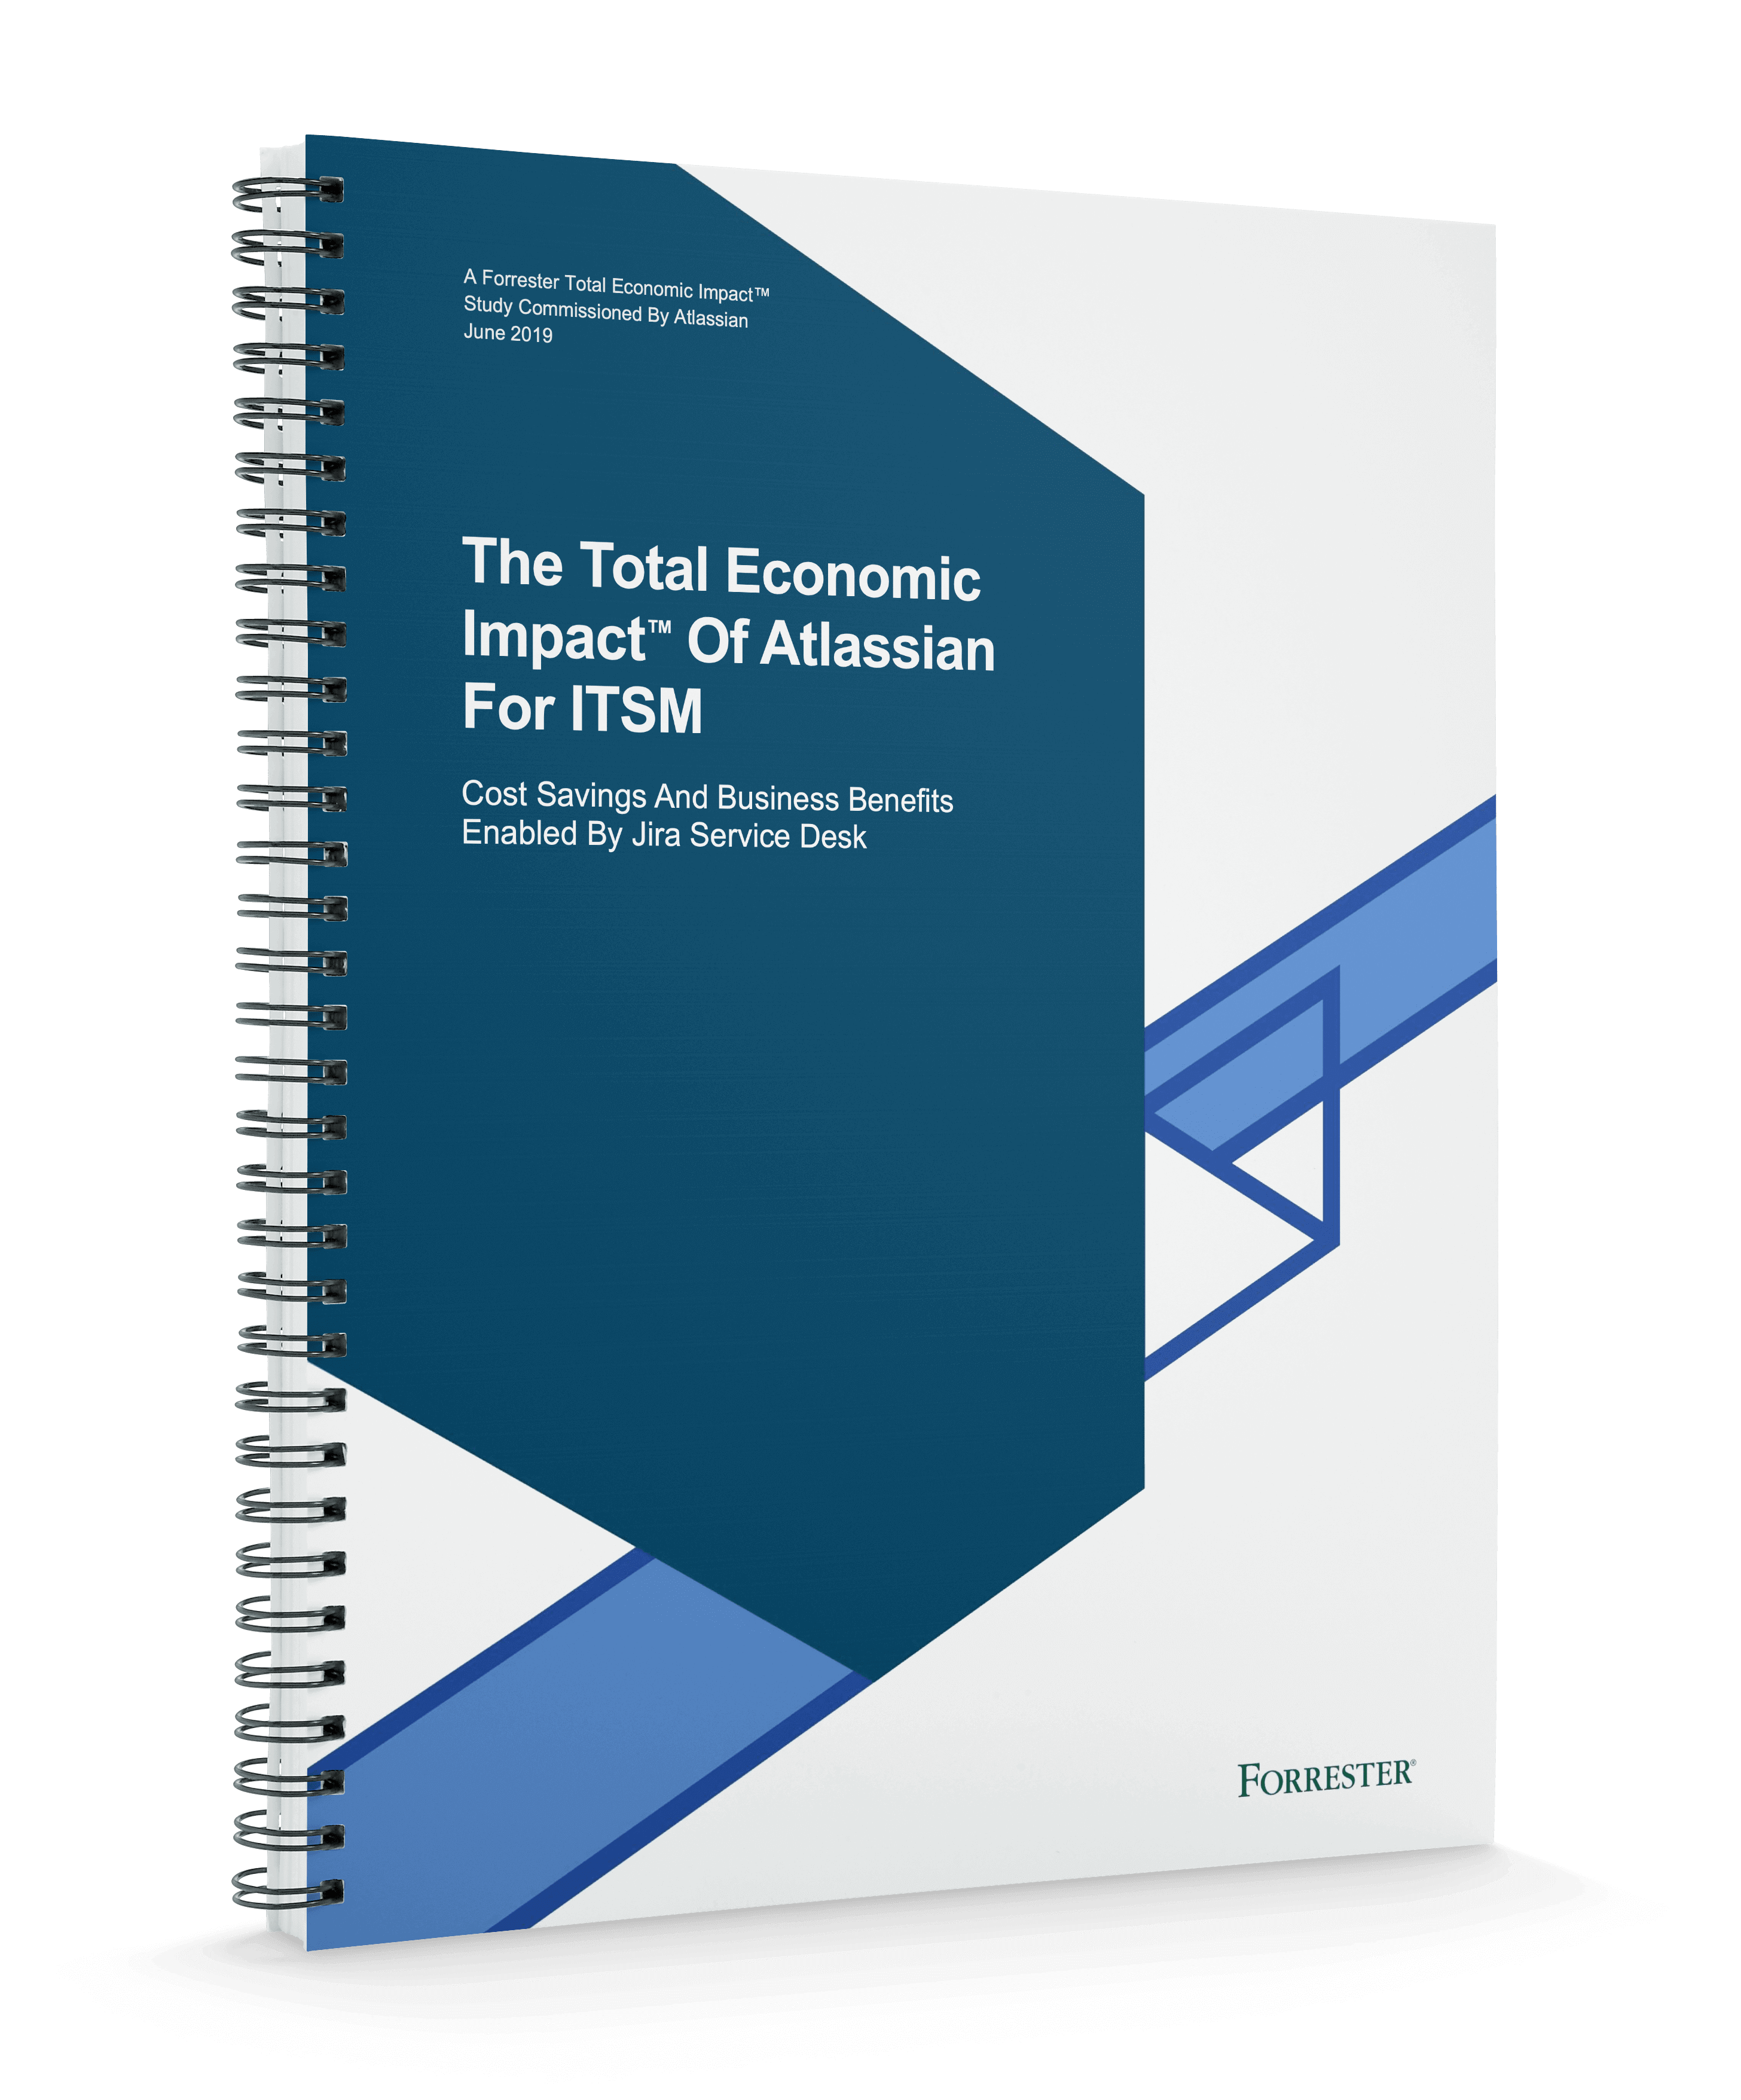 The Total Economic Impact™ Of Atlassian For ITSM book cover